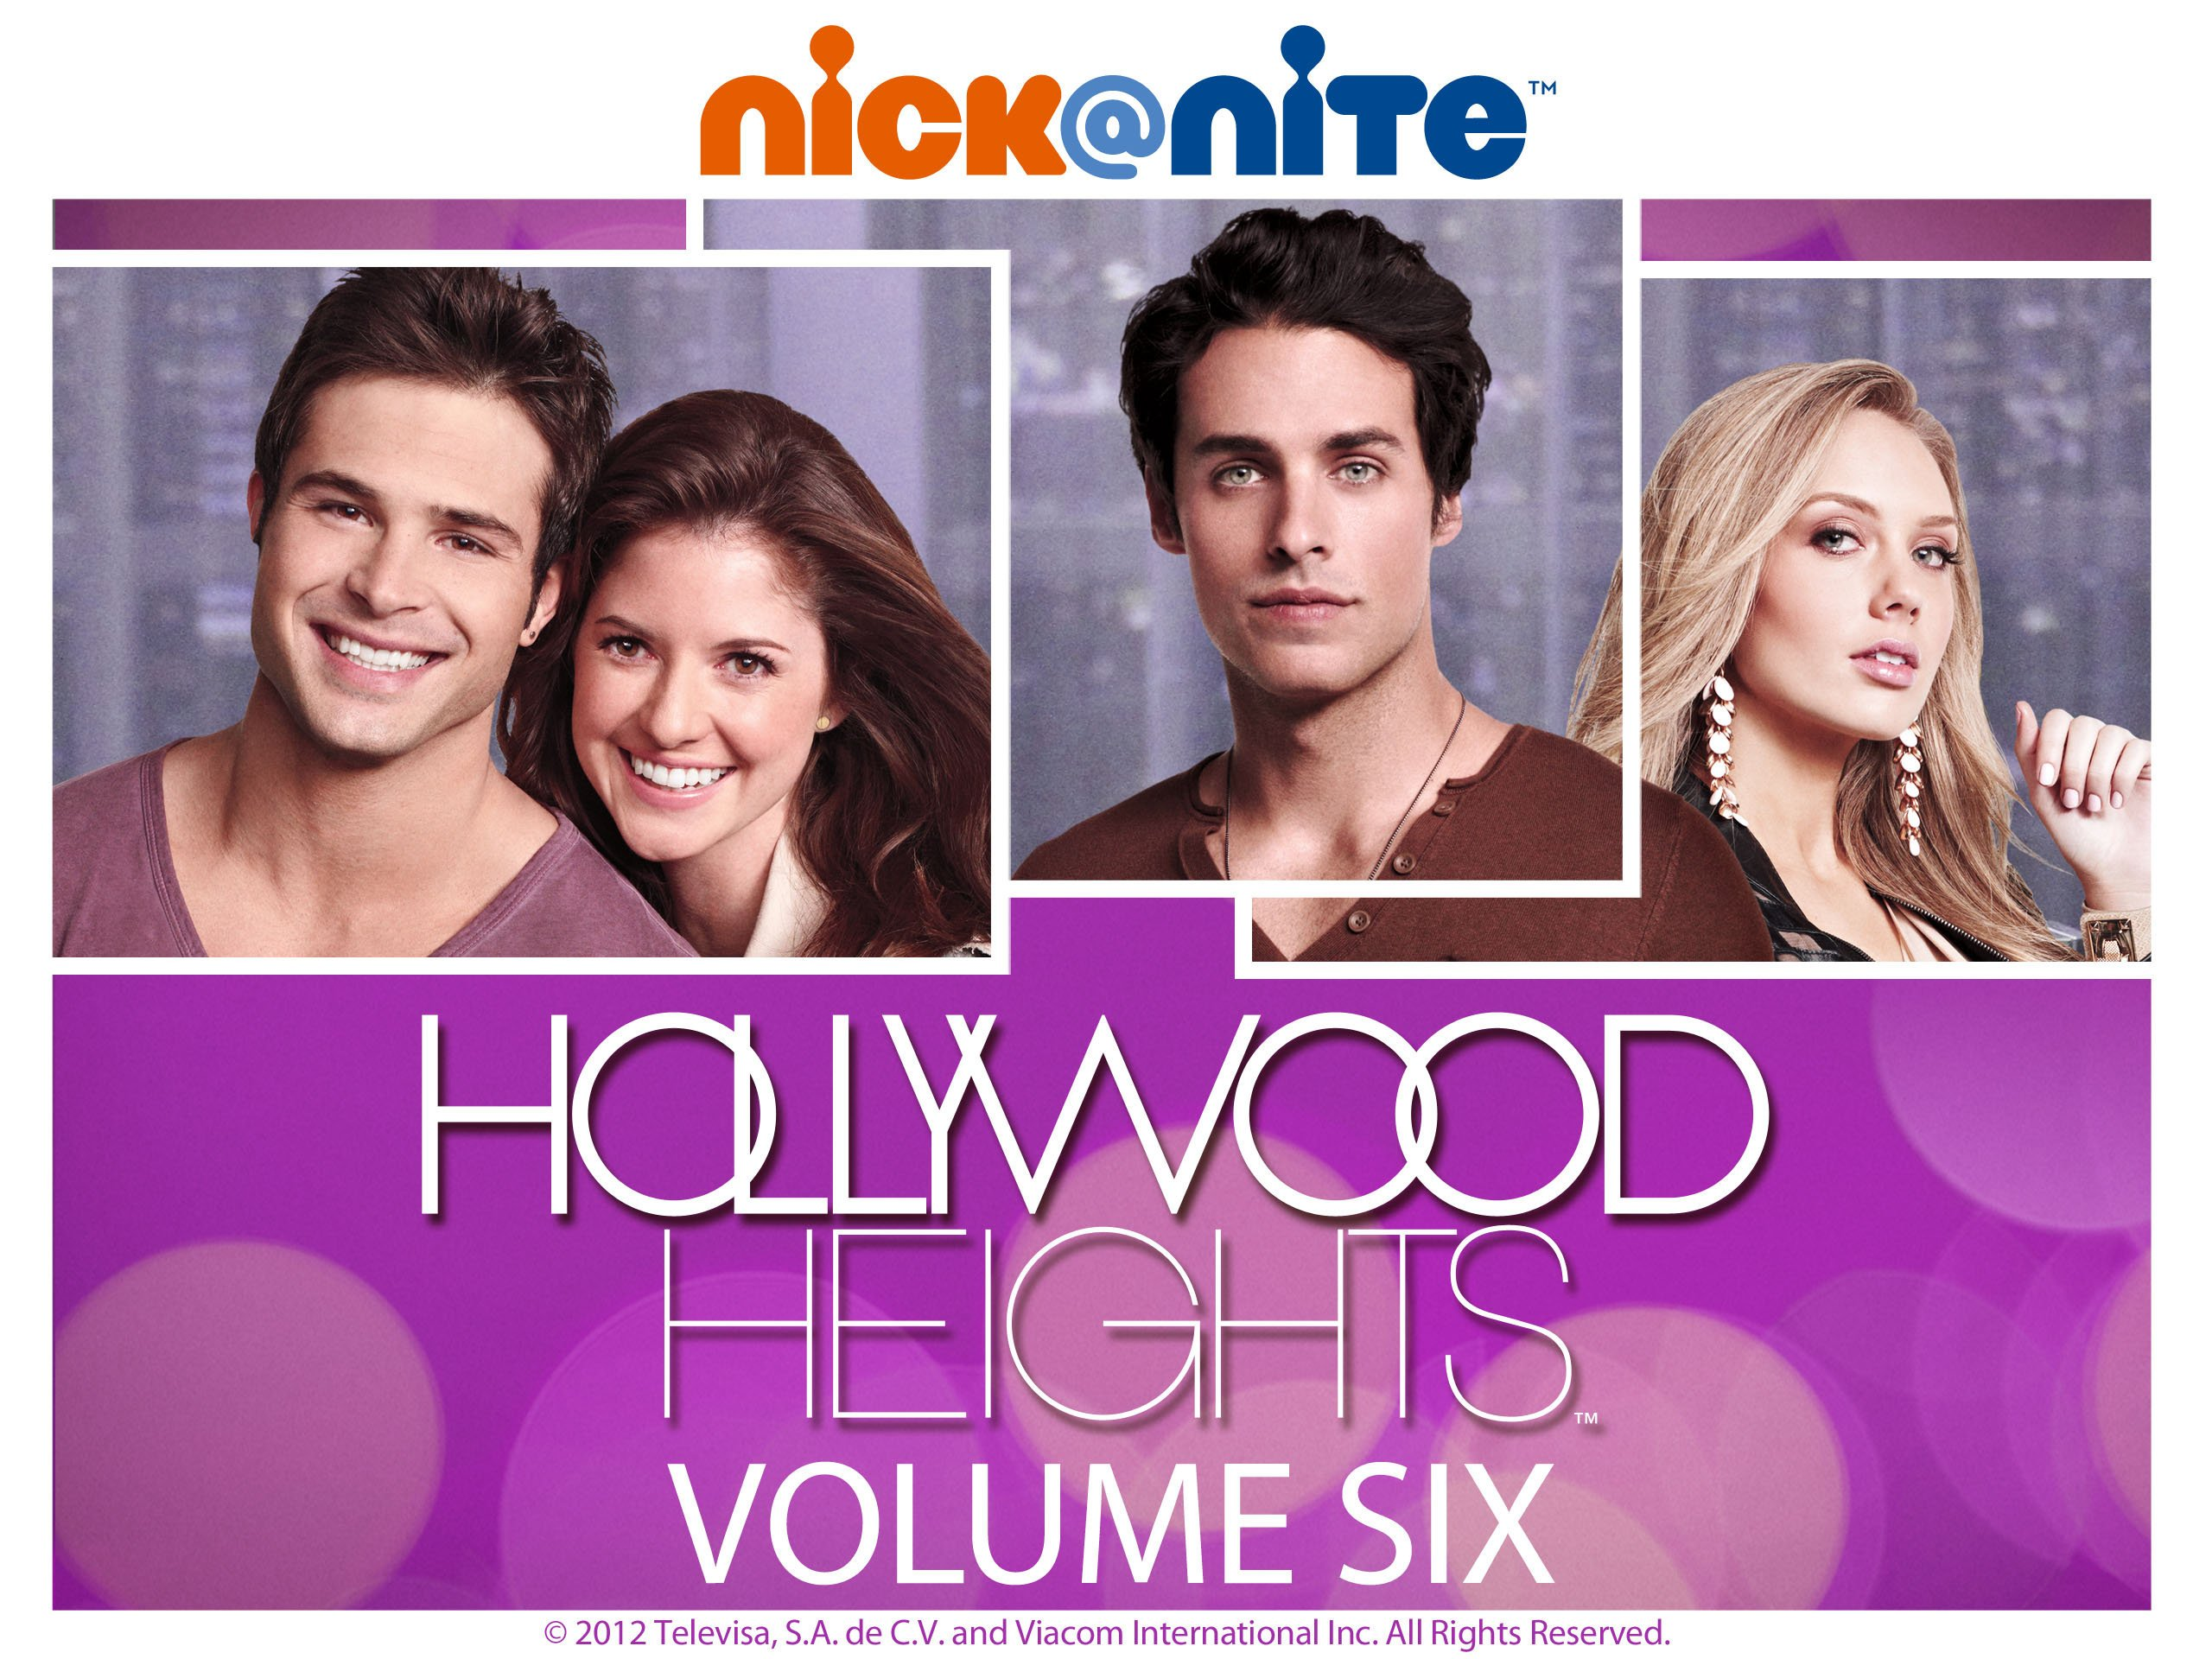 hollywood heights season 1 episode 13 tvtraxx